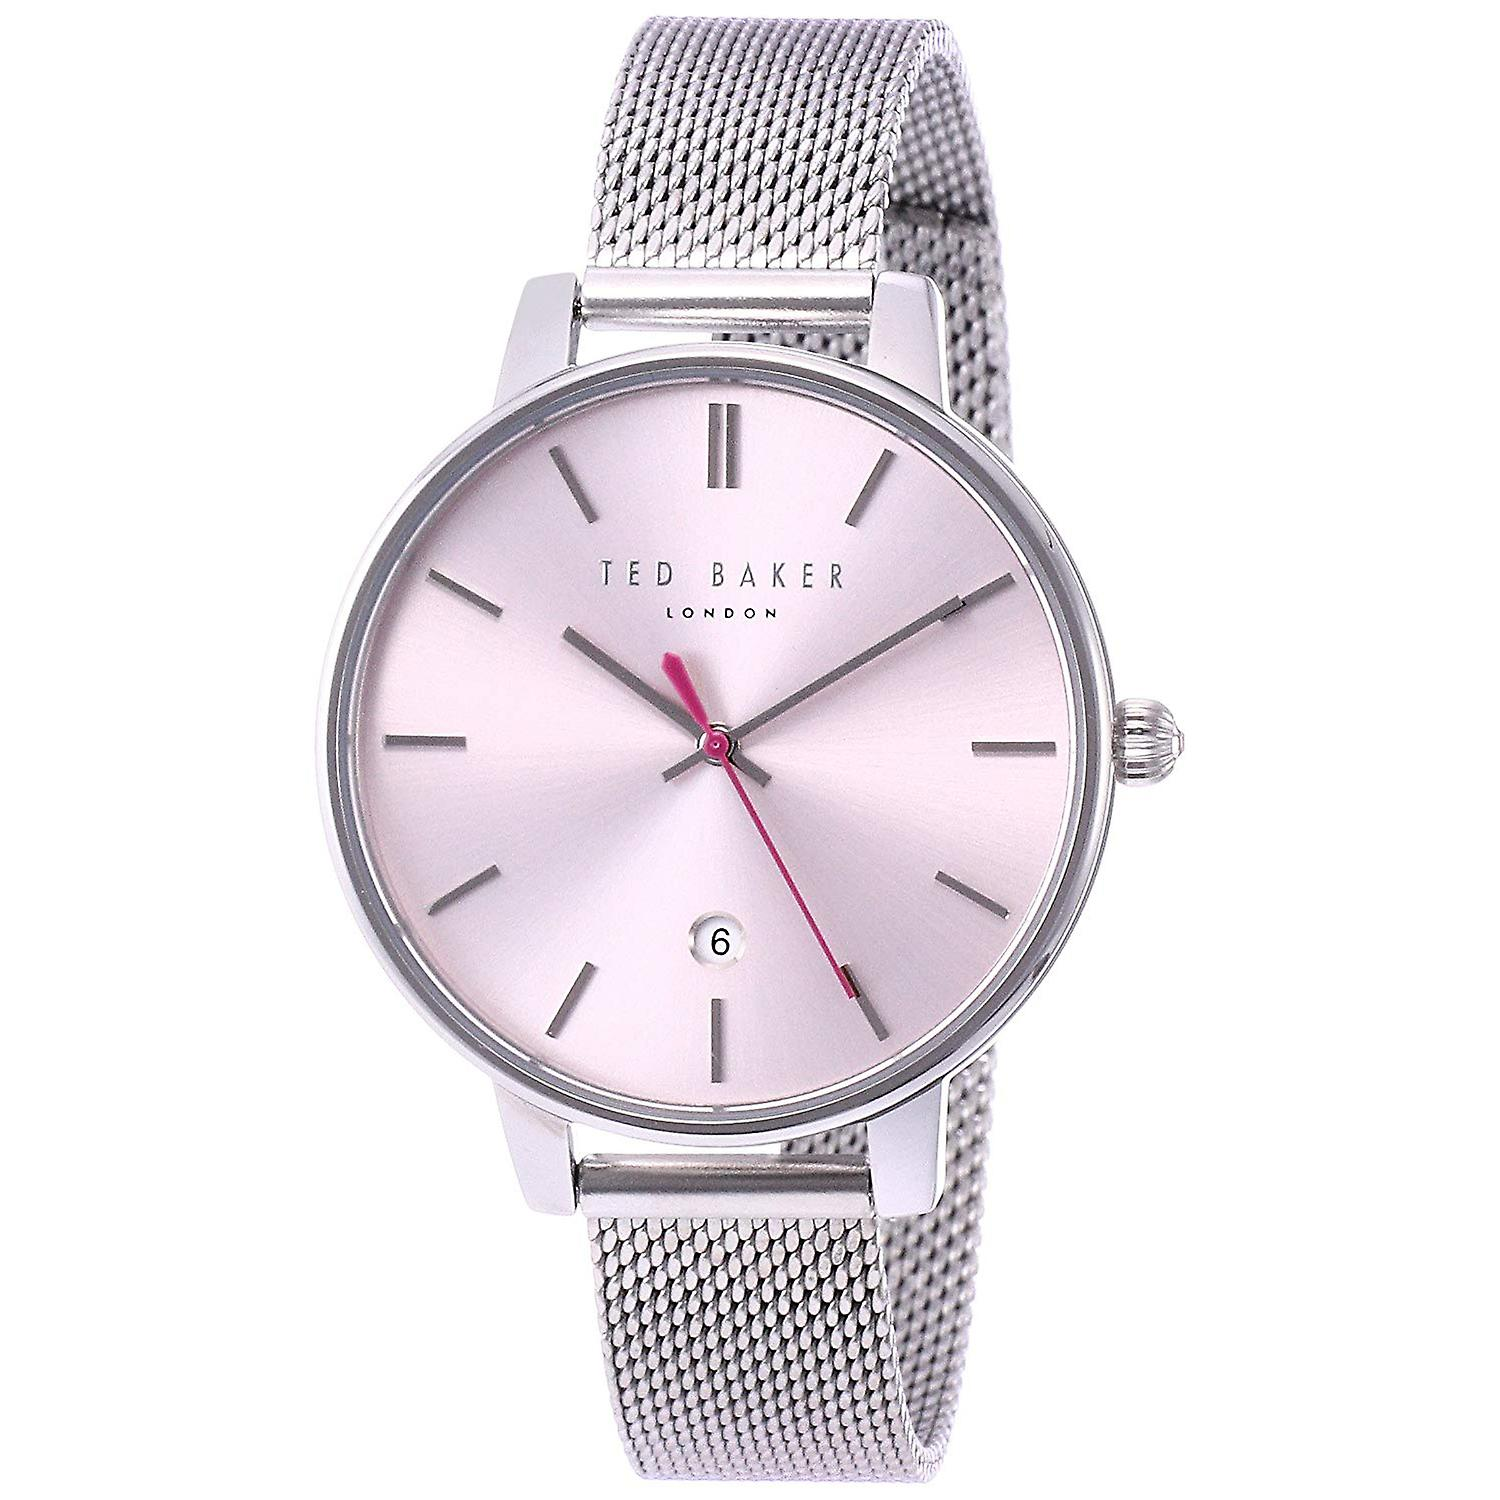 c458b29bb Ted Baker ladies Watch Silver